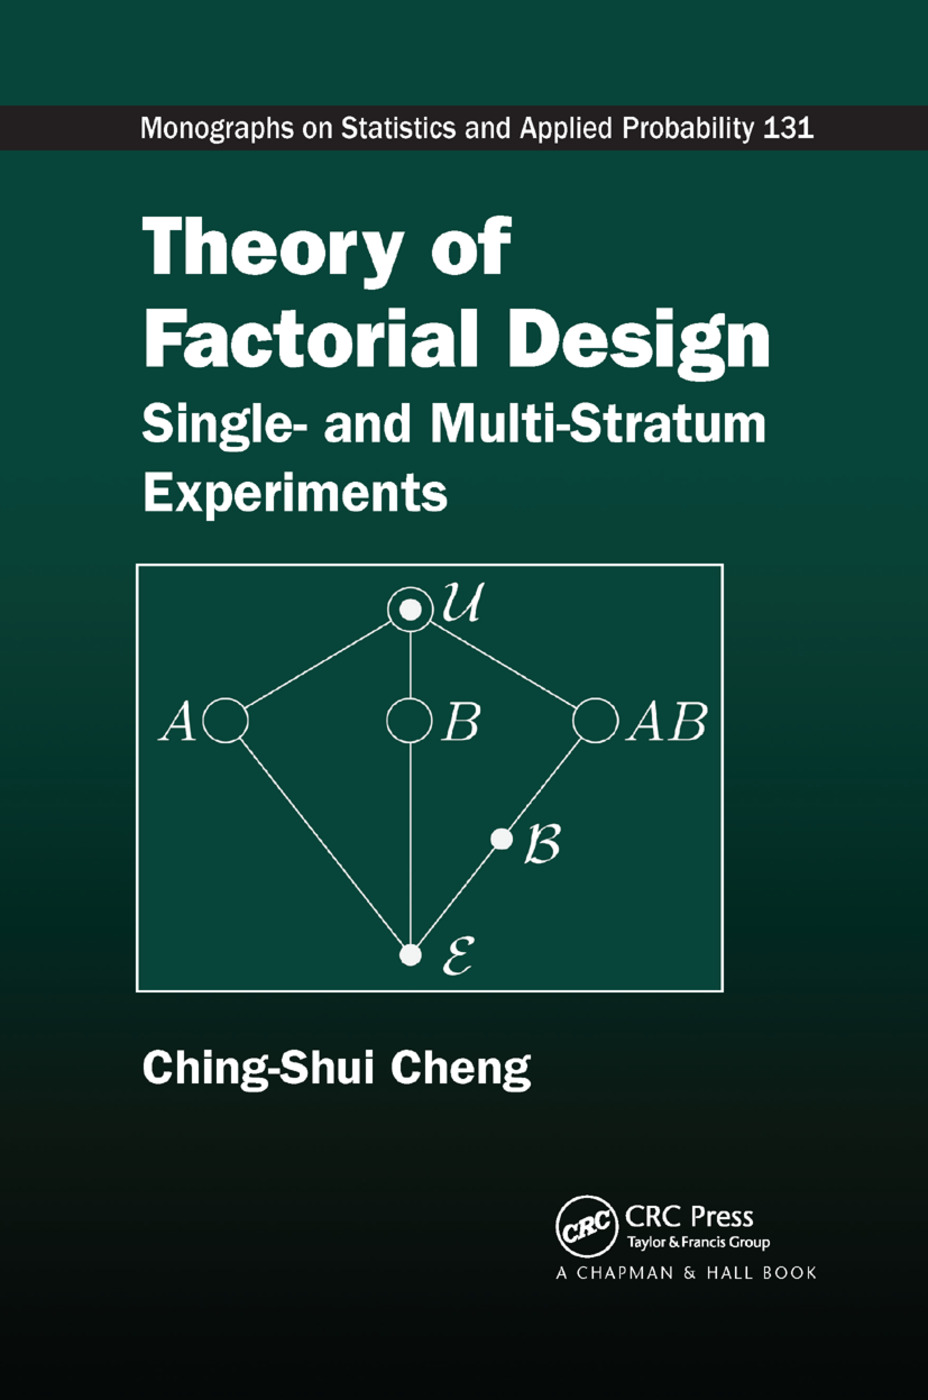 Theory of Factorial Design